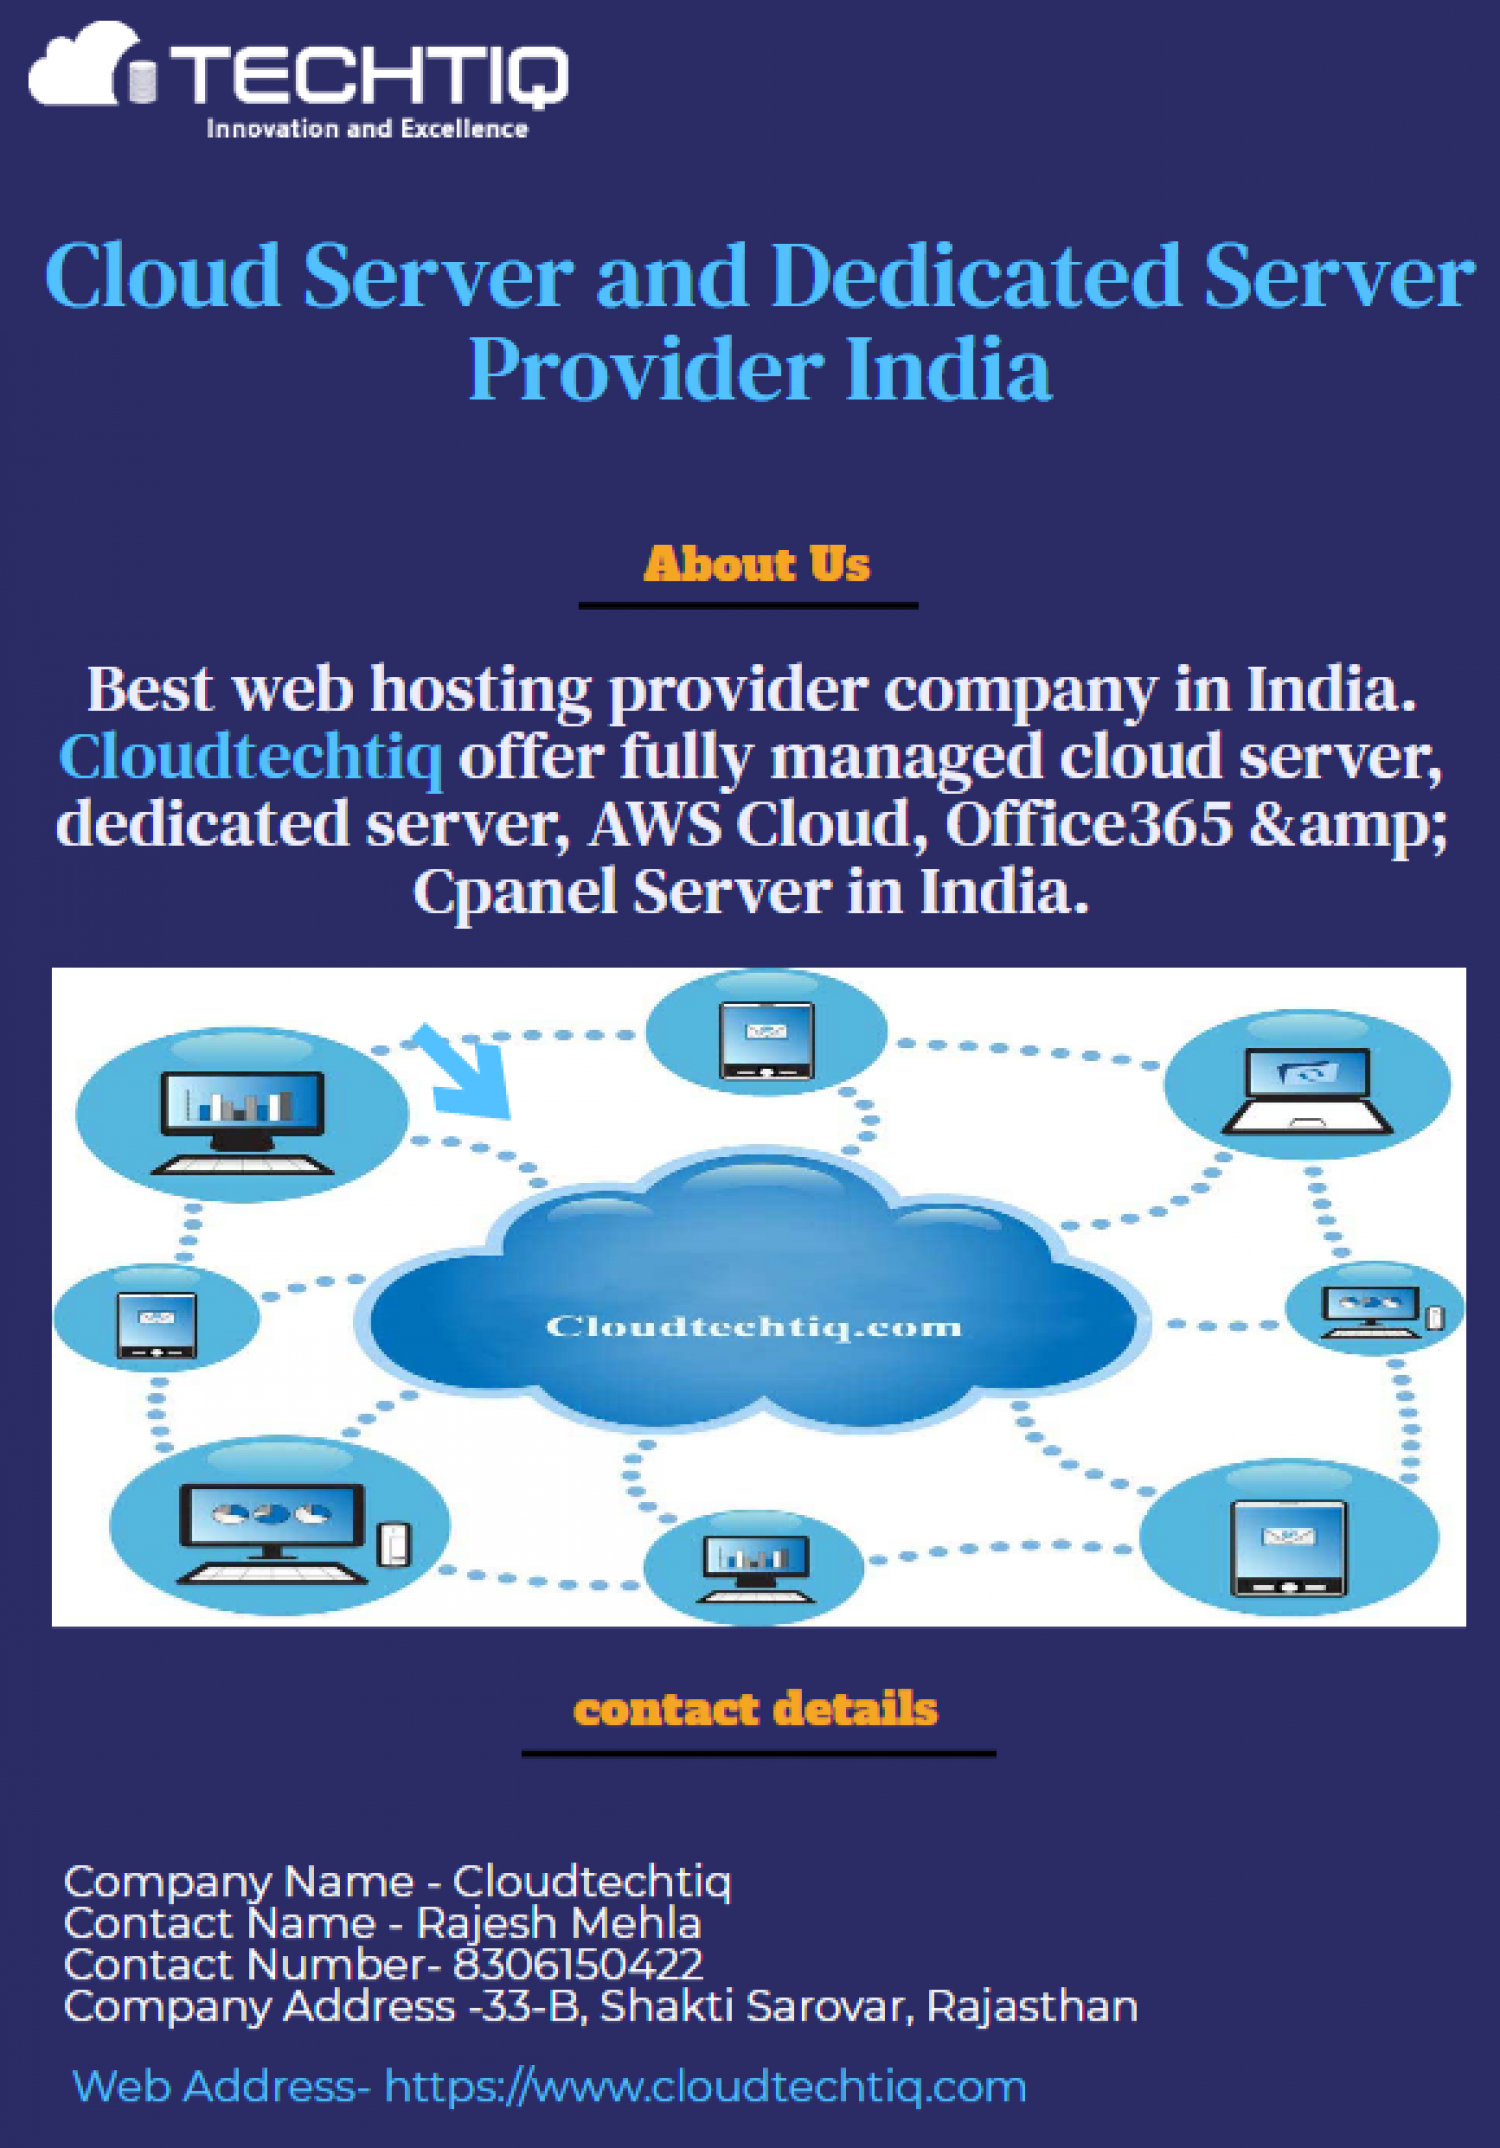 Cloud Server and Dedicated Server Provider India Infographic